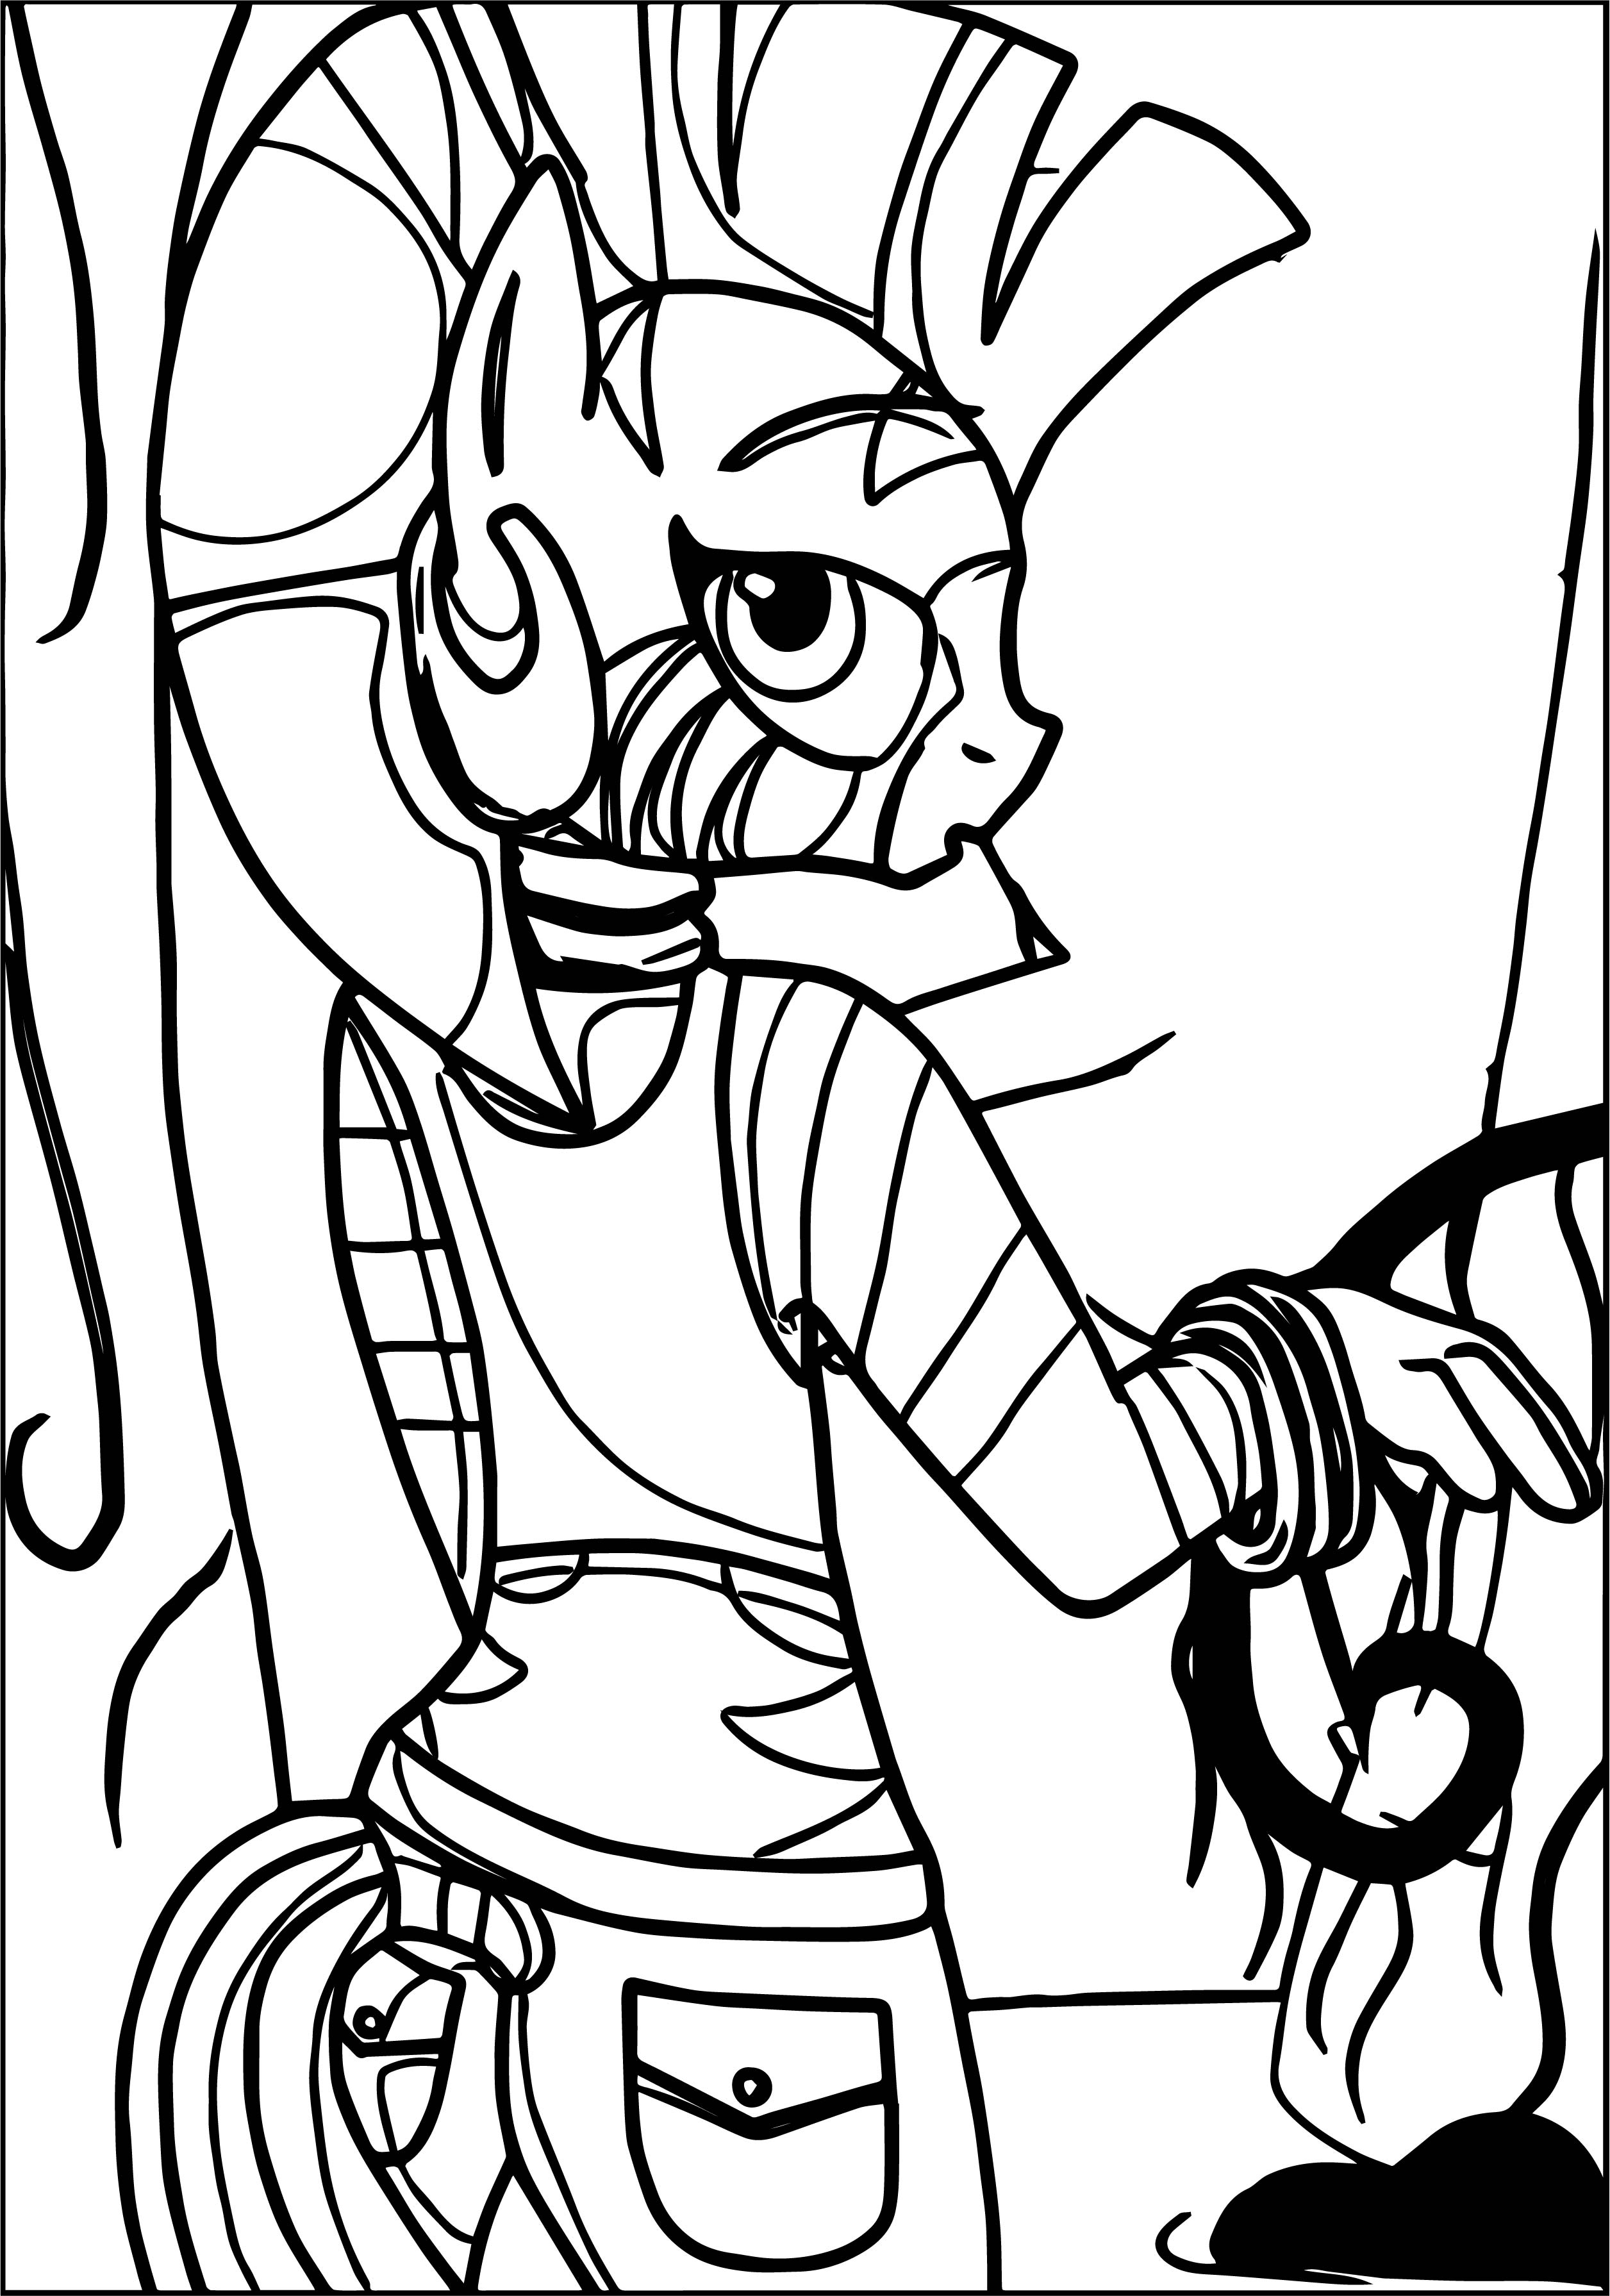 Modern Zecora In Everfree Forest Coloring Page